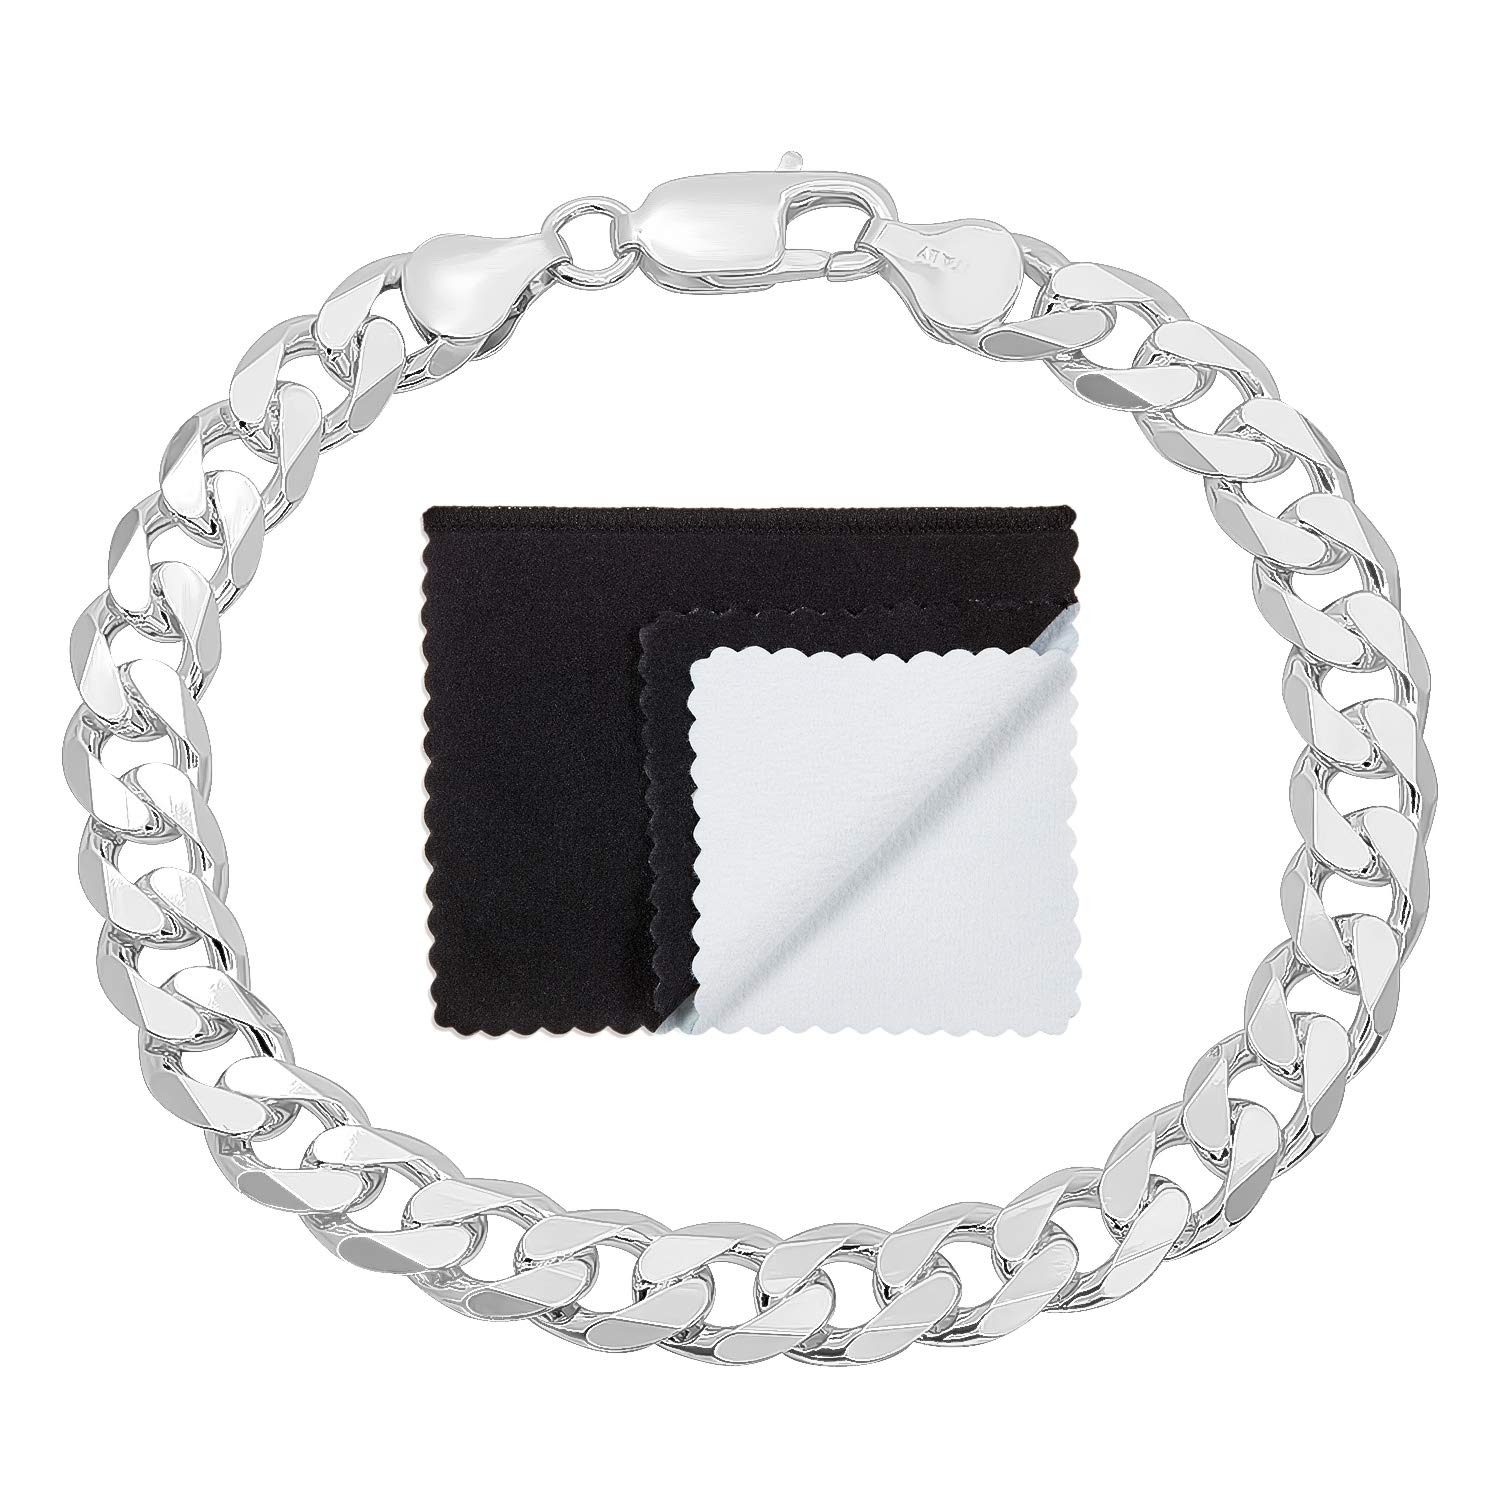 Boy's 8.5mm Thick .925 Sterling Silver Italian Crafted Beveled Cuban Curb Link Bracelet, 7 inches